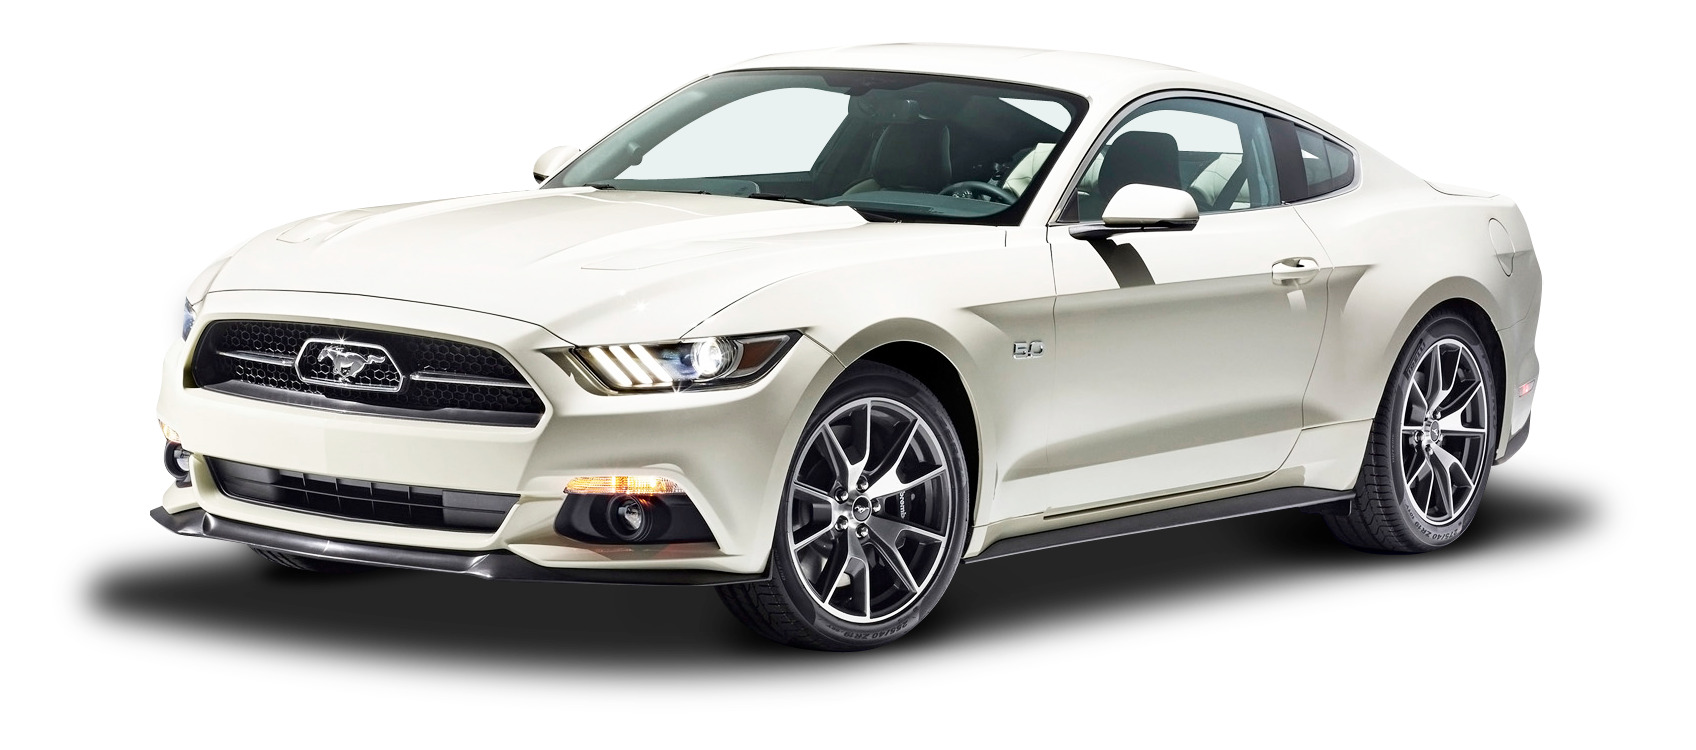 White Ford Mustang Gt Fastback Car Png Image Mustang Ford